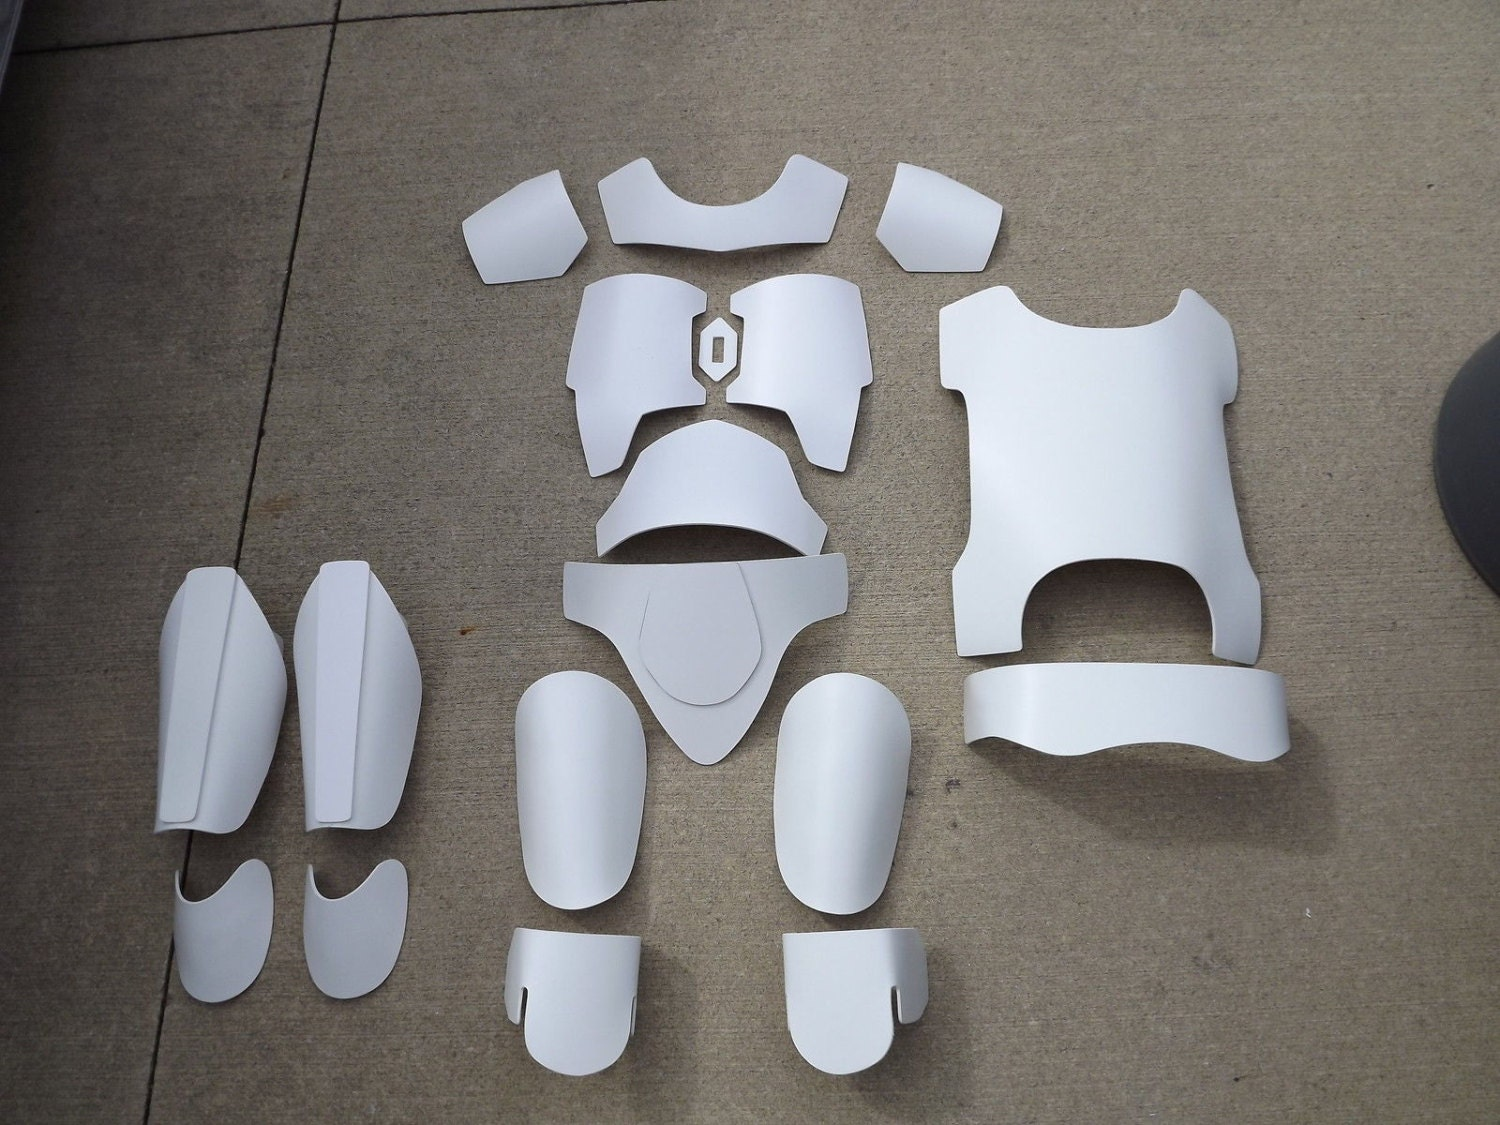 cardboard armour template - the gallery for iron man helmet template cardboard